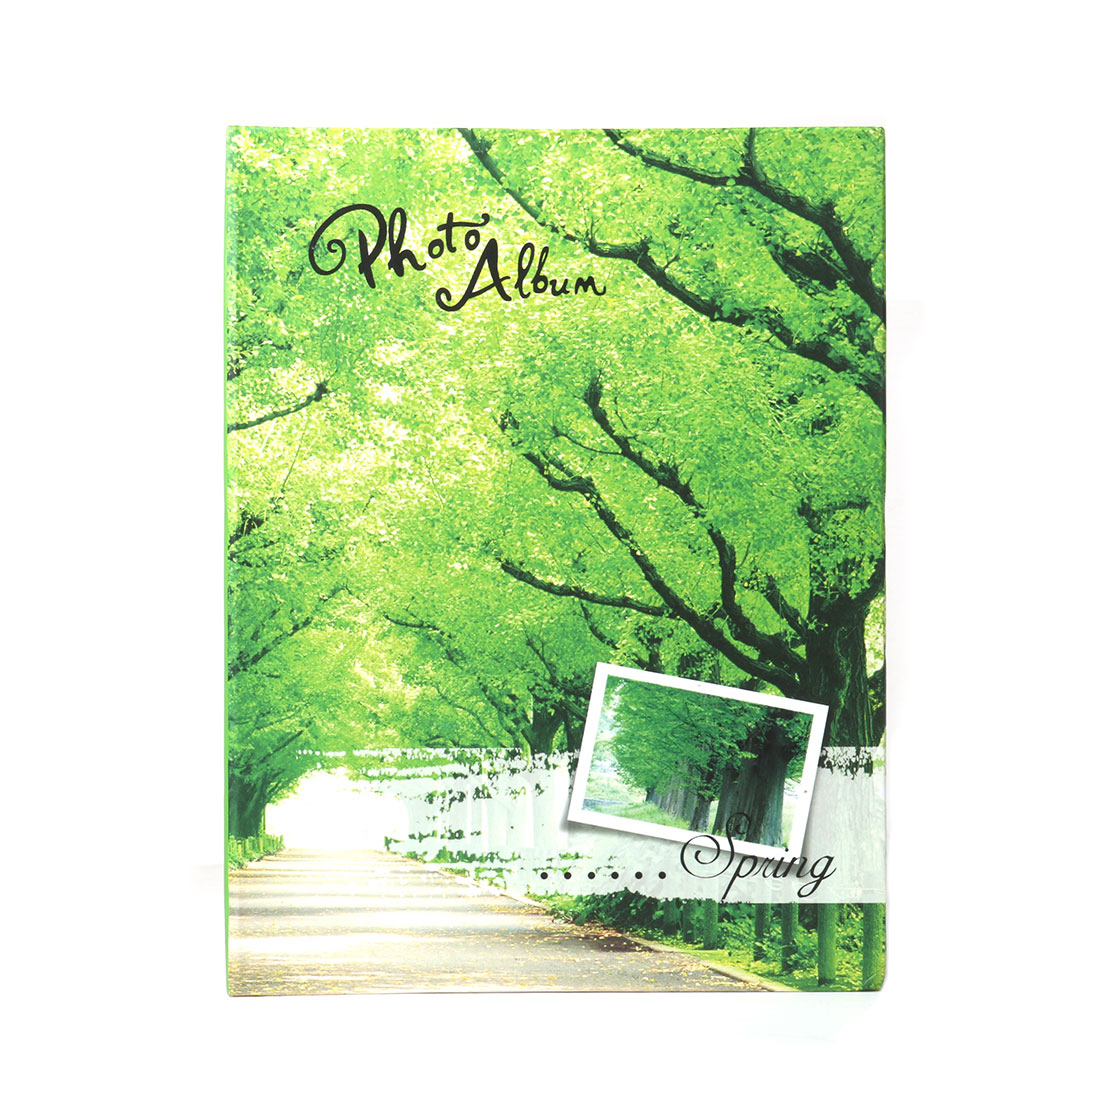 Household Retangular Shaped Spring Scenery Pattern Collections Holder Photo Album